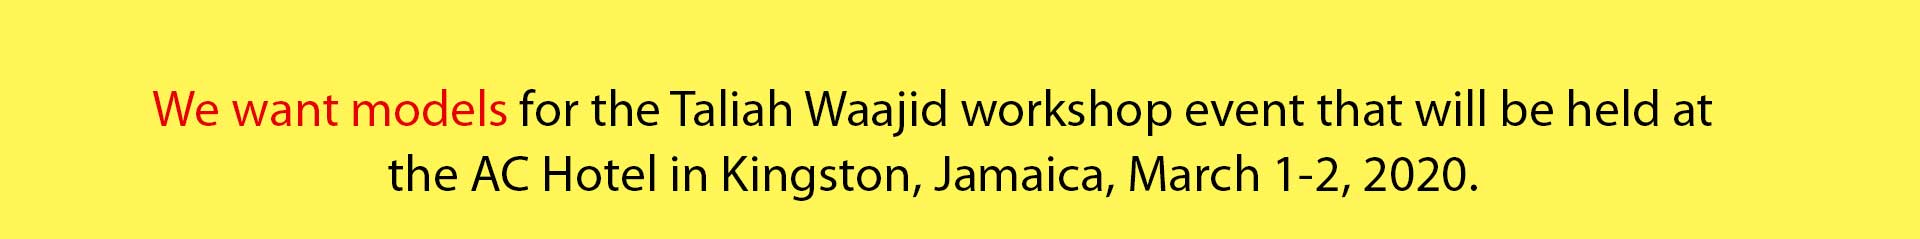 We want models for the Taliah Waajid workshop event that will be held at the AC Hotel in Kingston, Jamaica, March 1-2, 2020.